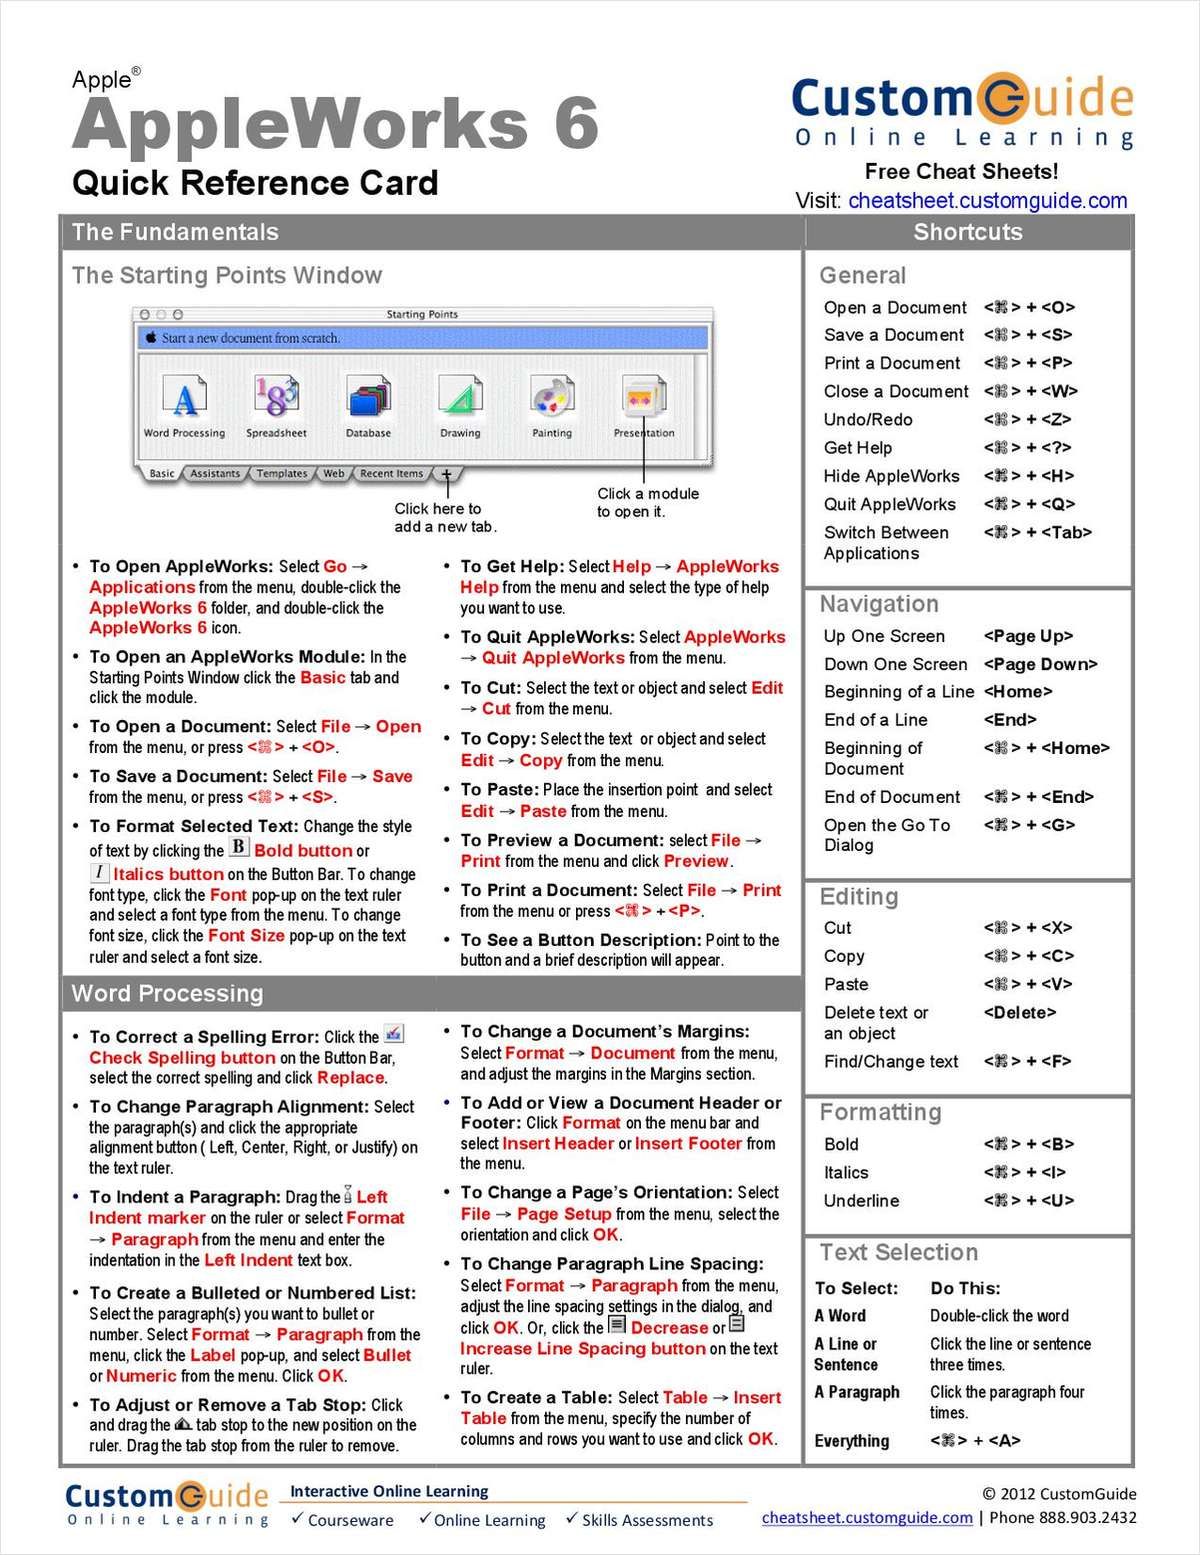 AppleWorks 6 -- Quick Reference Card